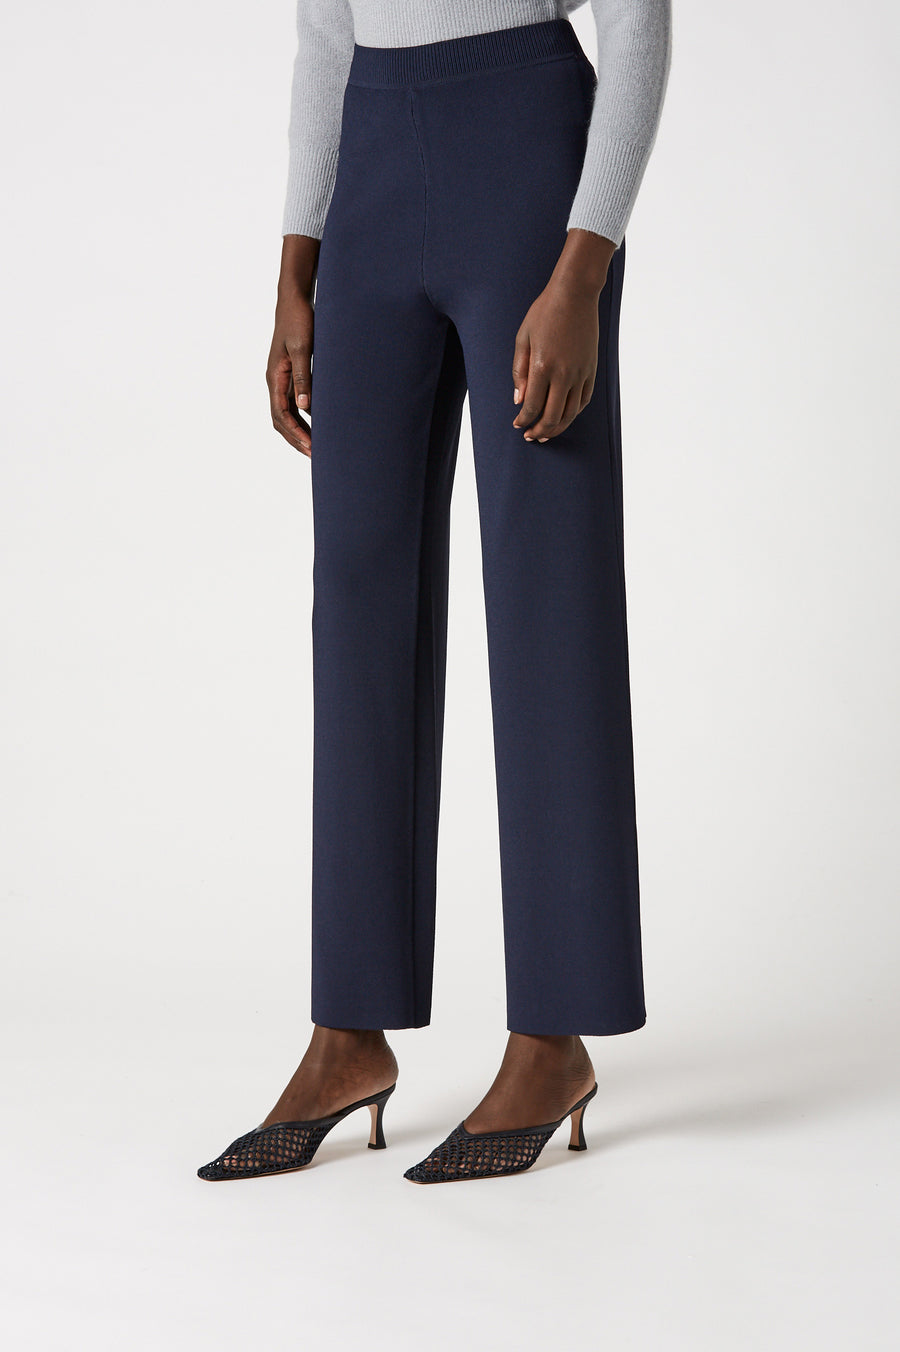 The High Waist Knit Trouser exudes chic winter styling